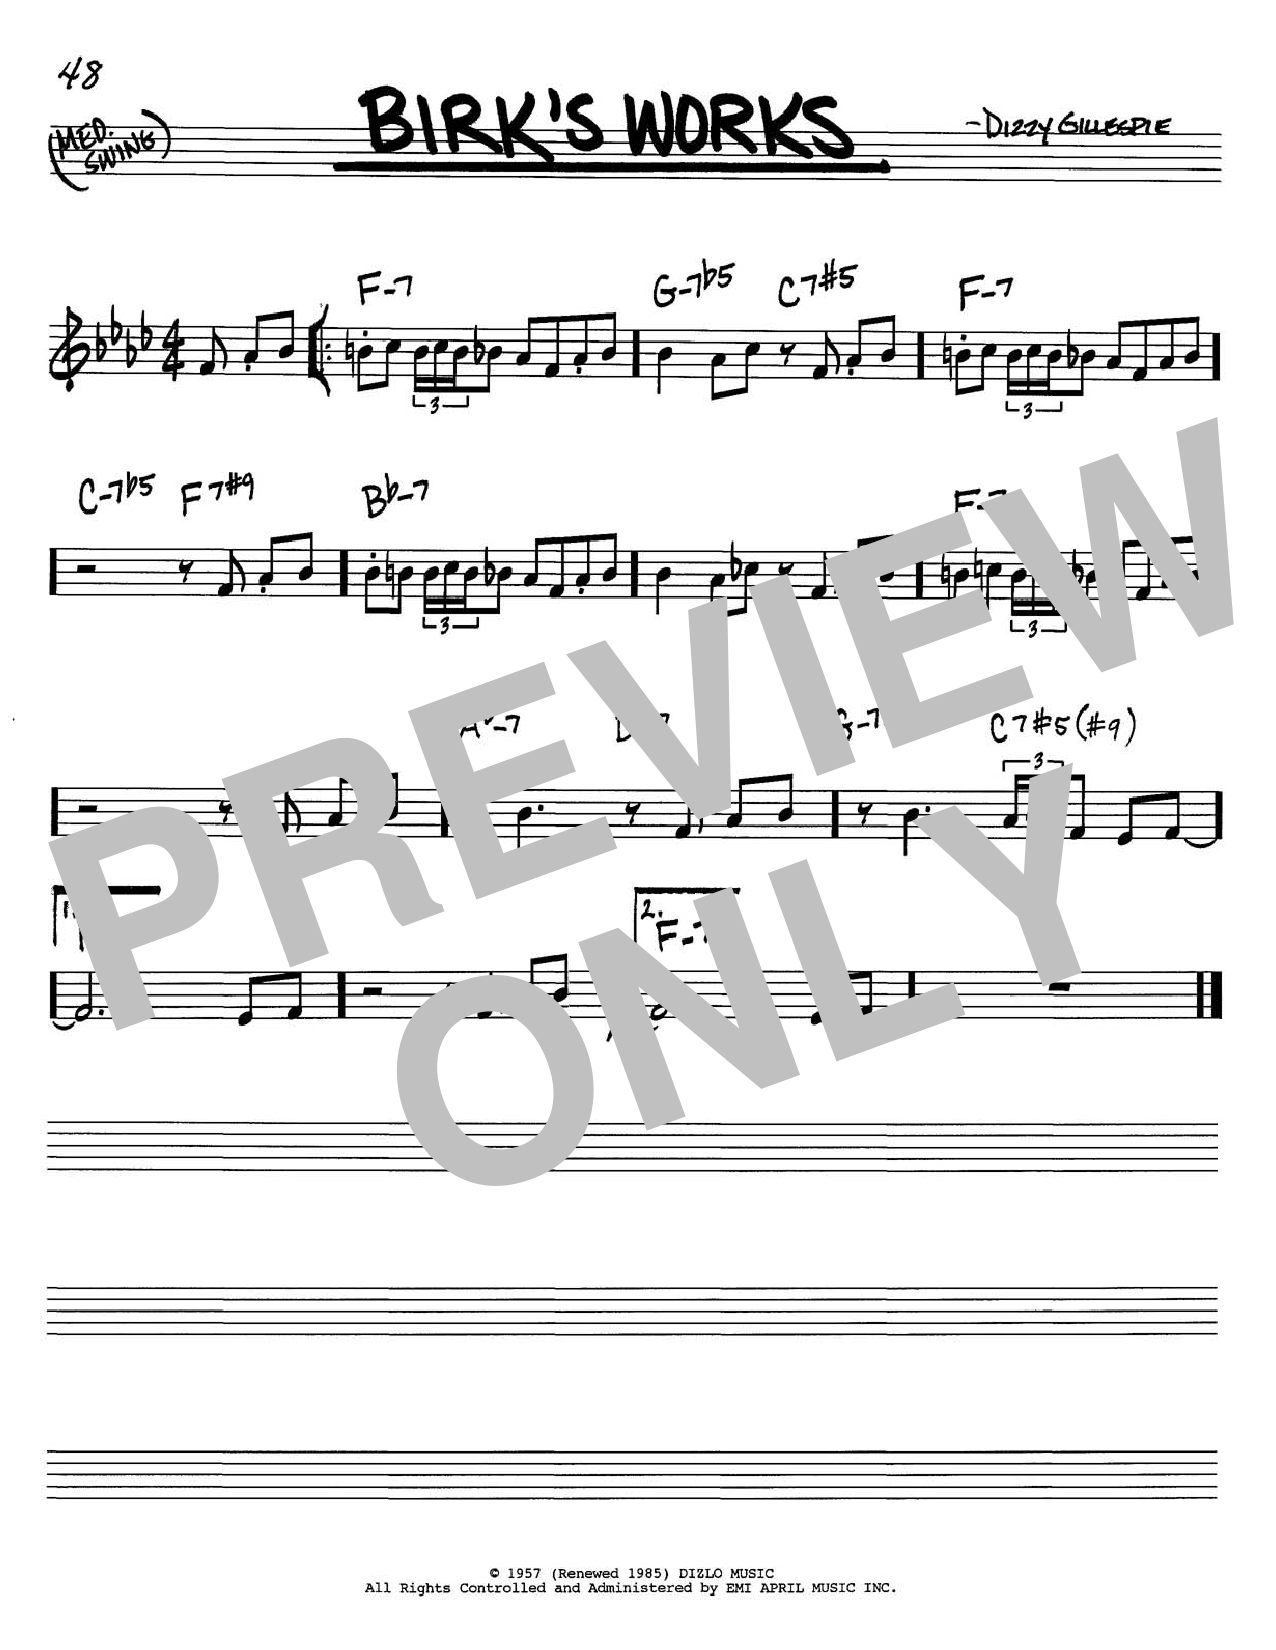 Dizzy Gillespie Birk's Works sheet music notes and chords. Download Printable PDF.